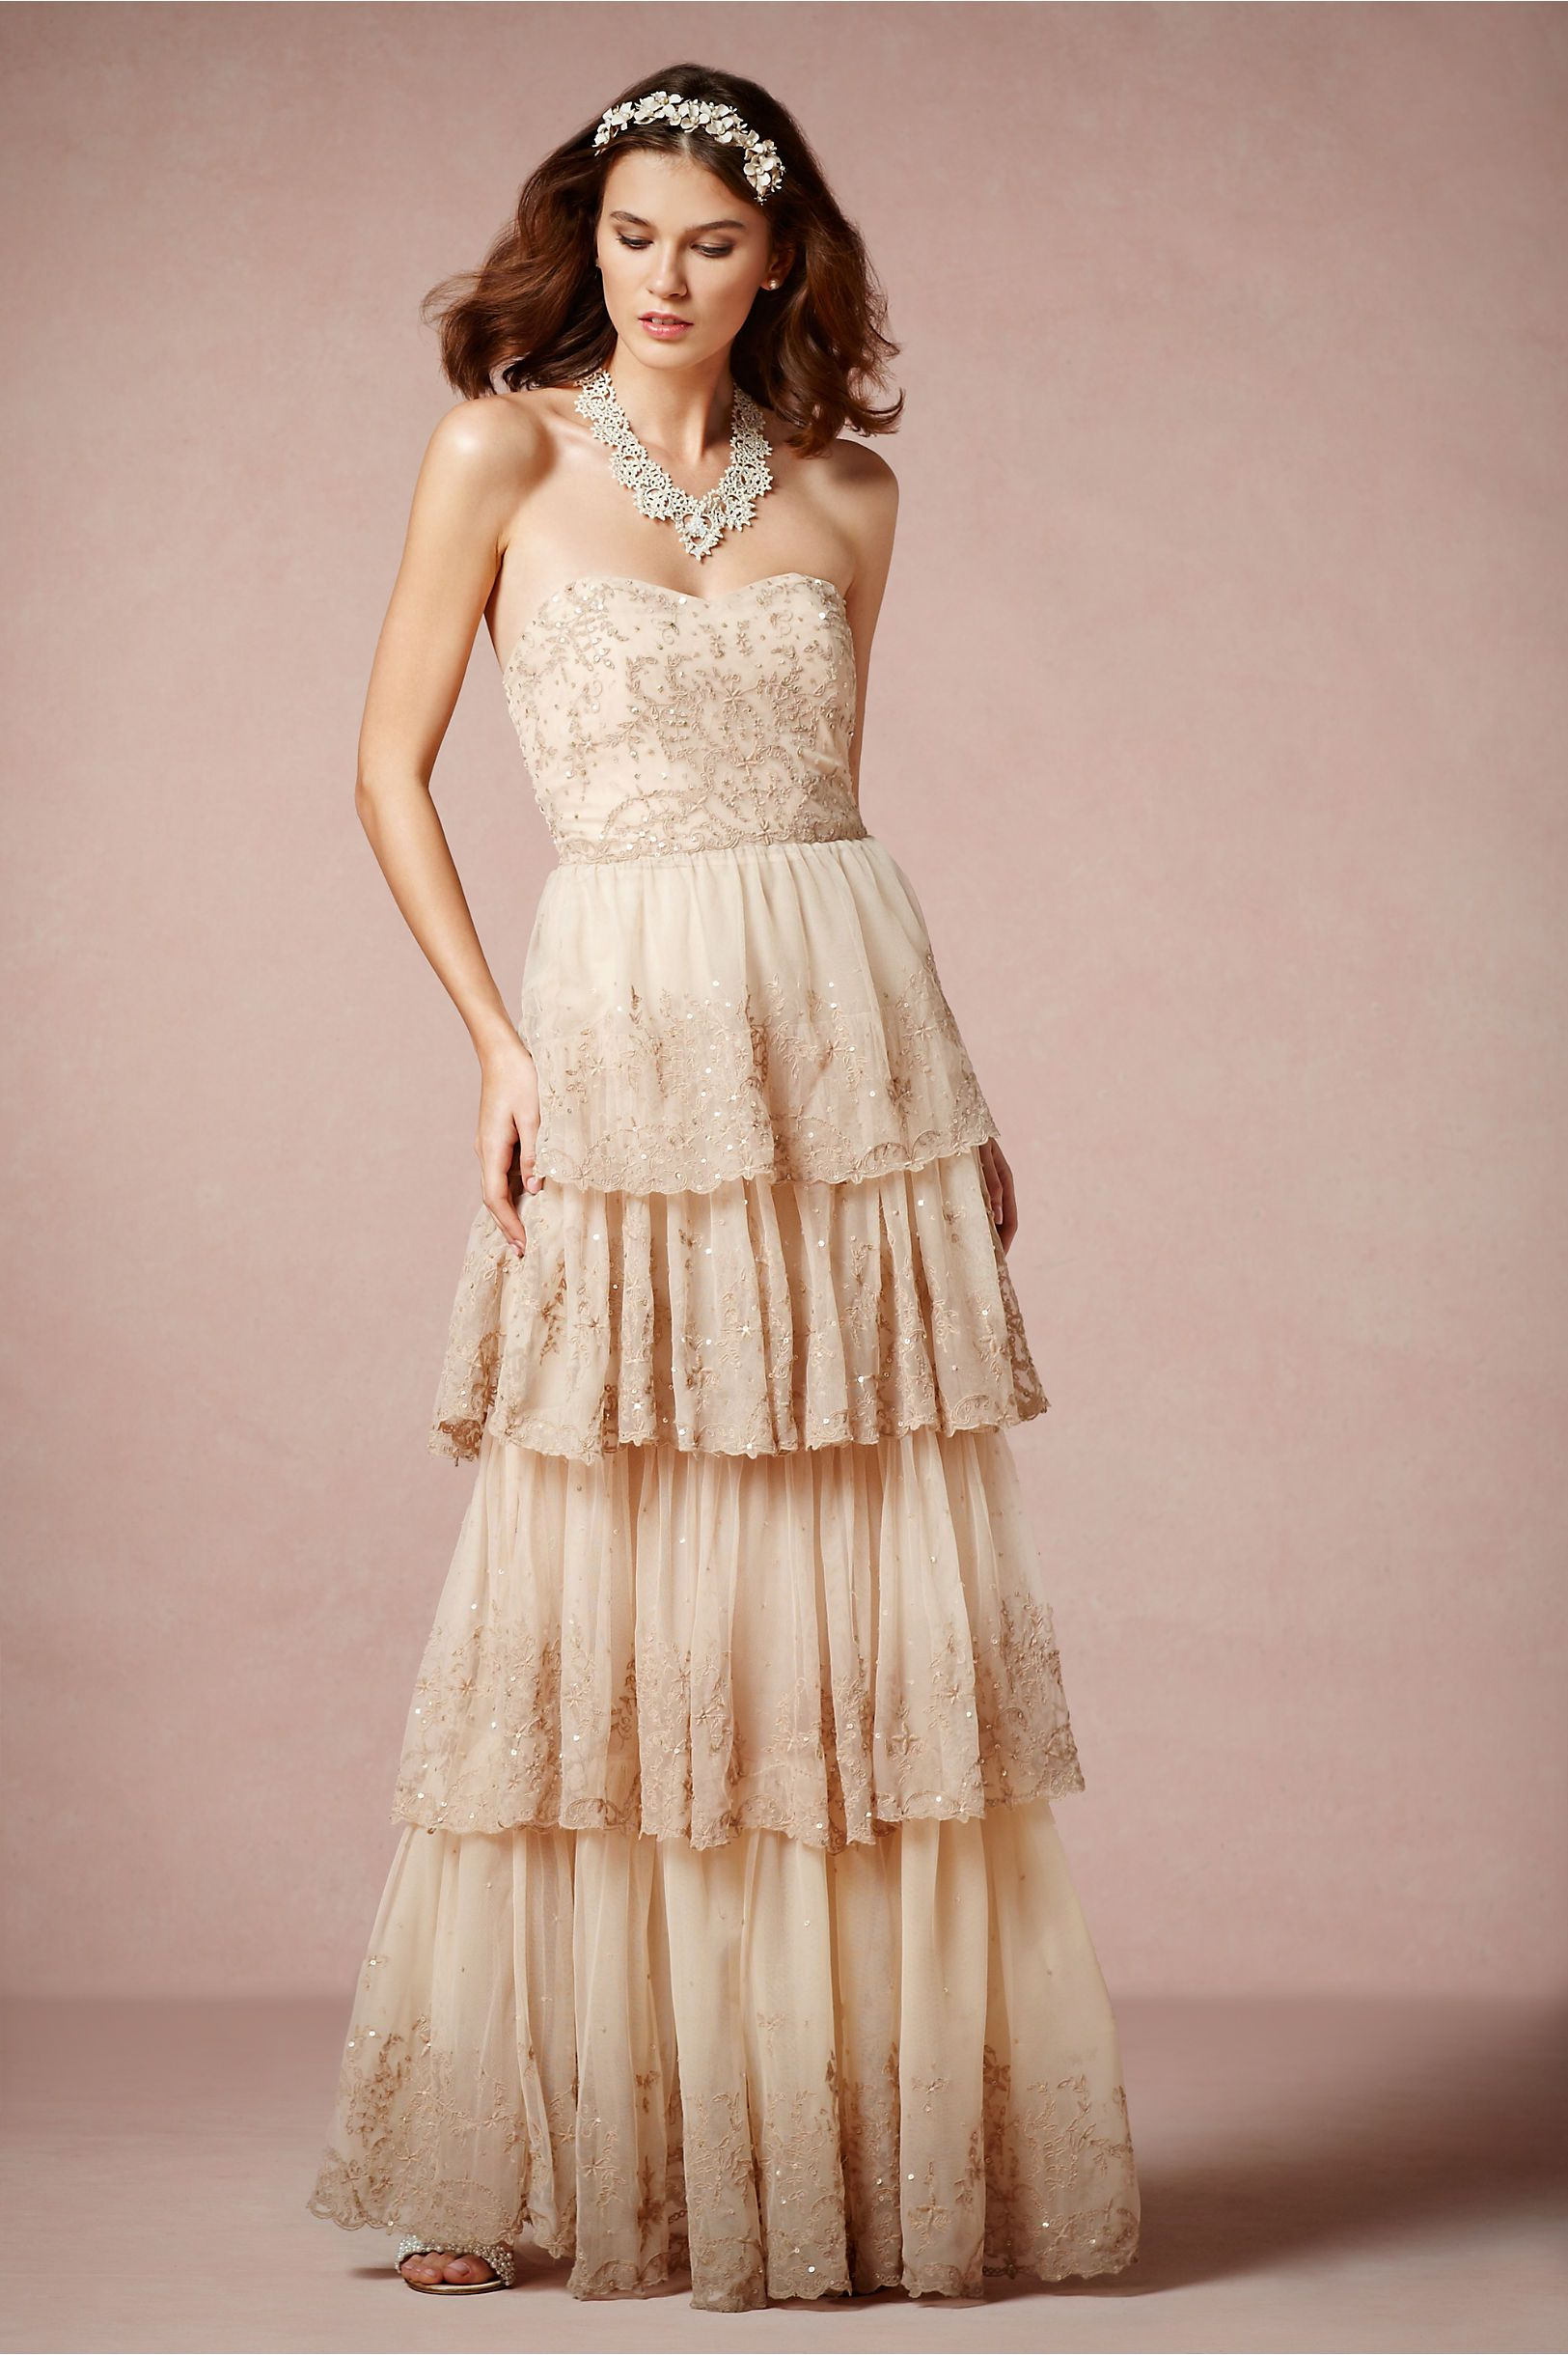 Rosecliff Gown from BHLDN | Wedding | Pinterest | Bodas vintage ...